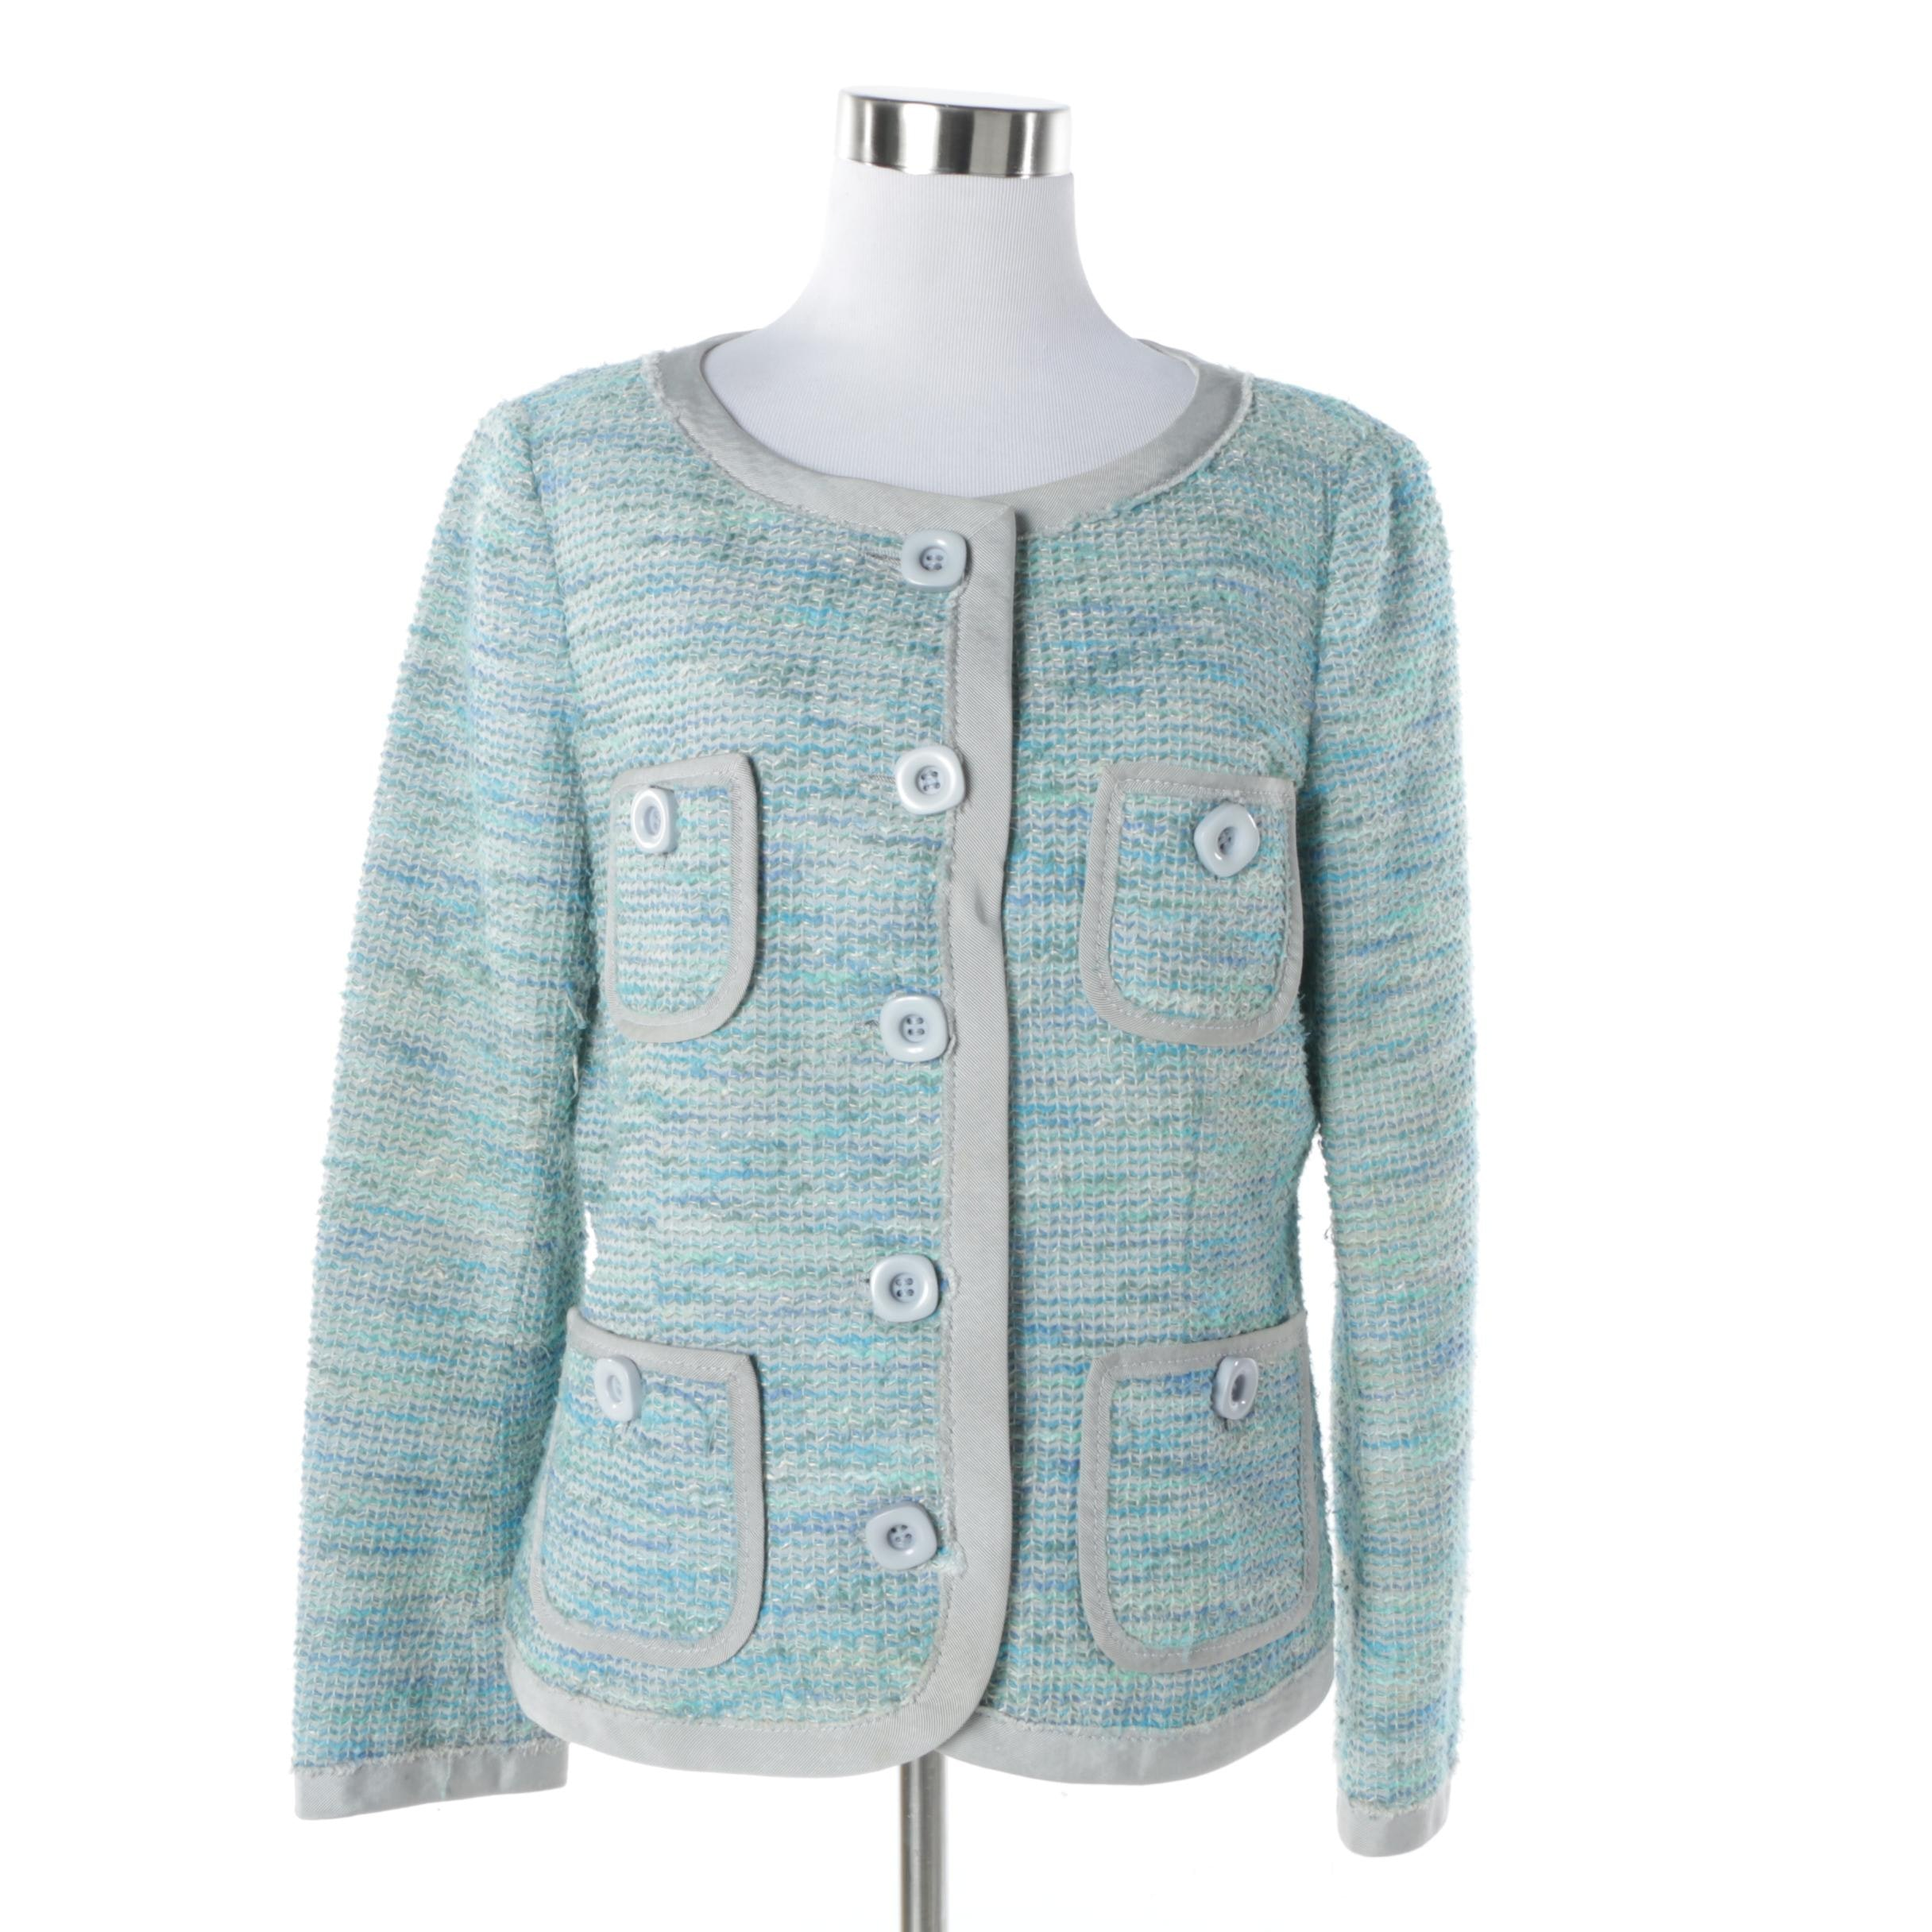 Moschino Cheap and Chic Aqua Tweed Jacket, Made in Italy